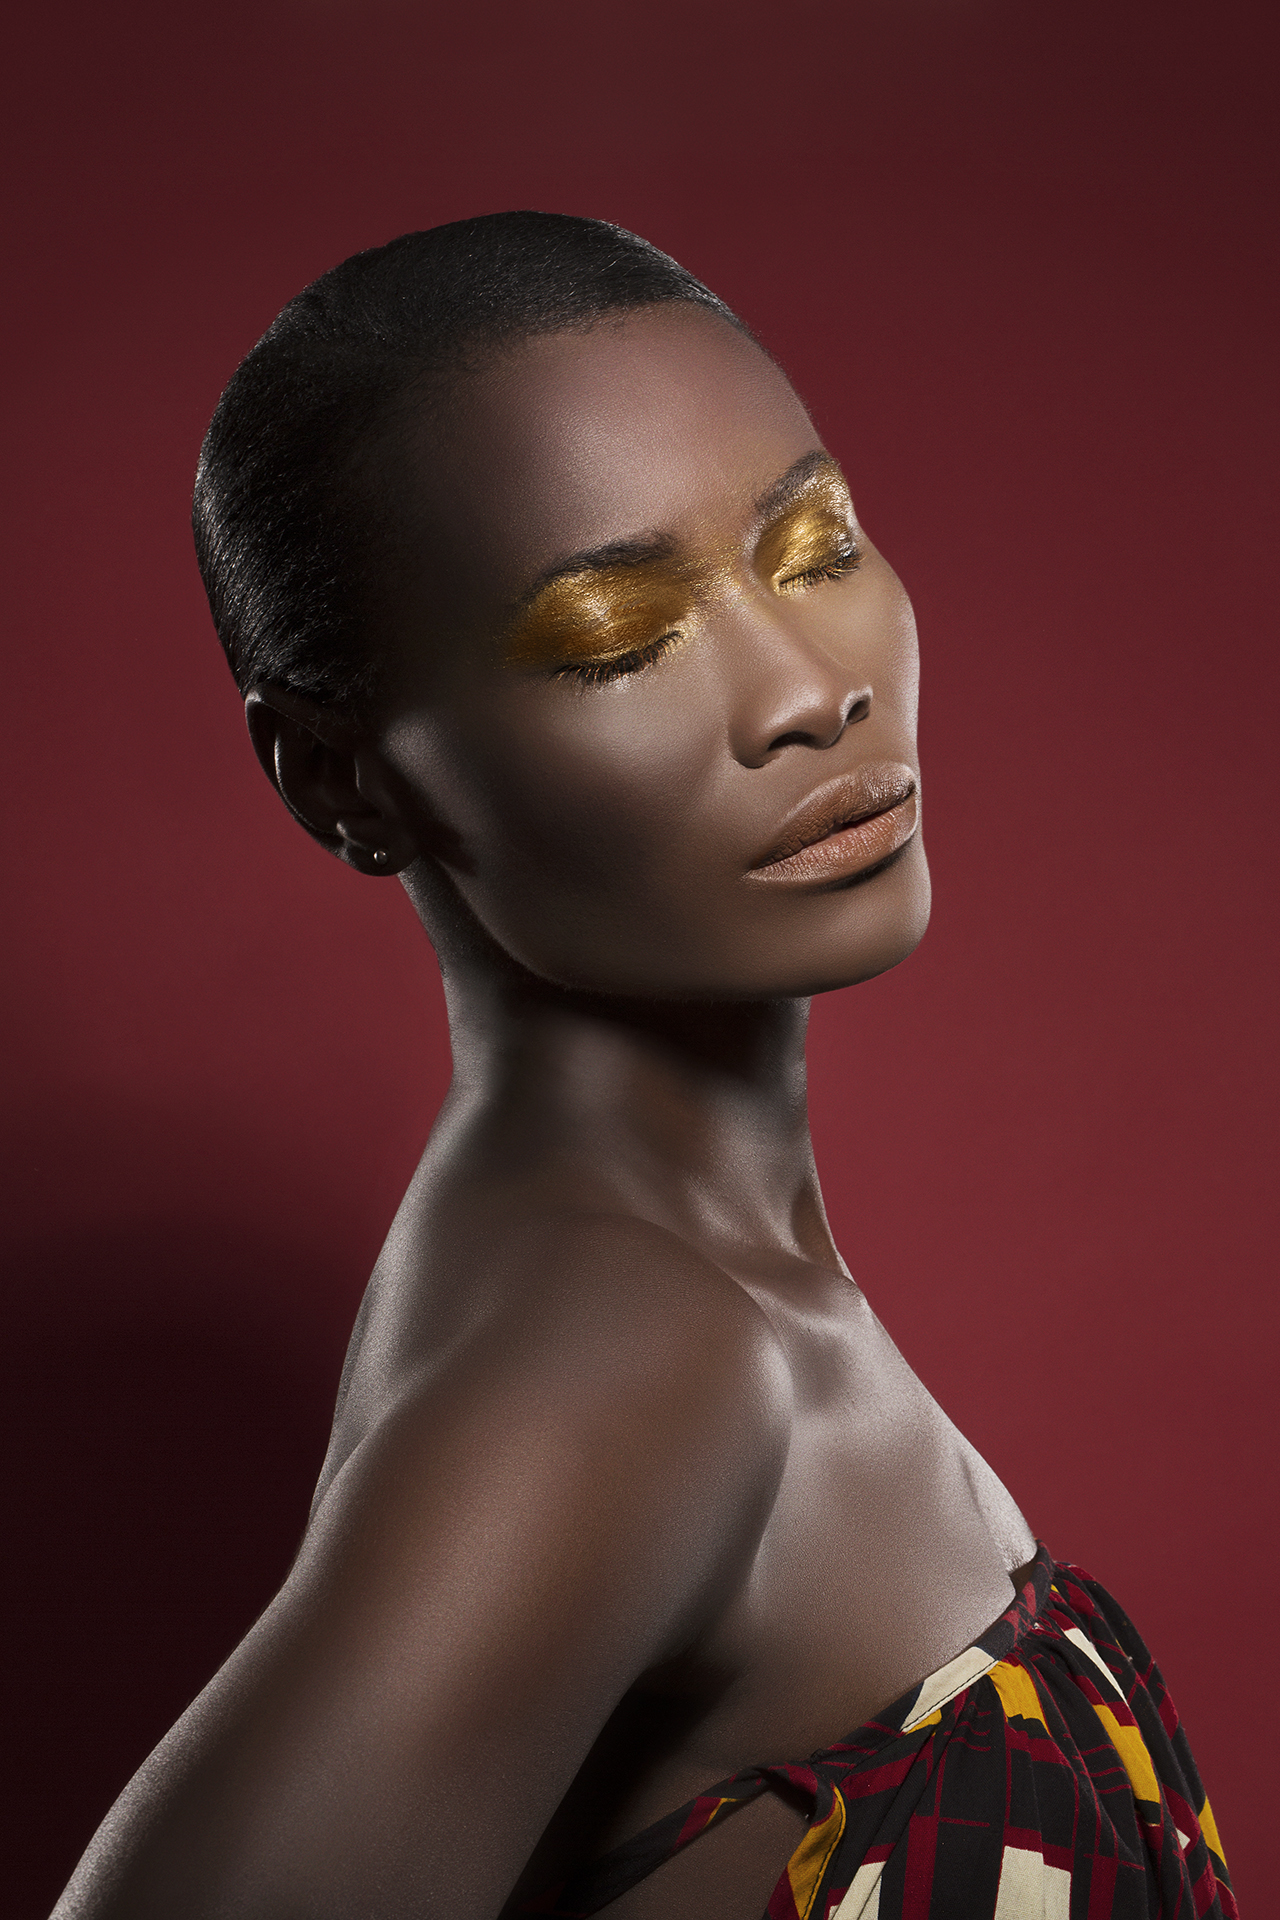 Photography: Mike Ruiz  Retouching: Irfan Yonac